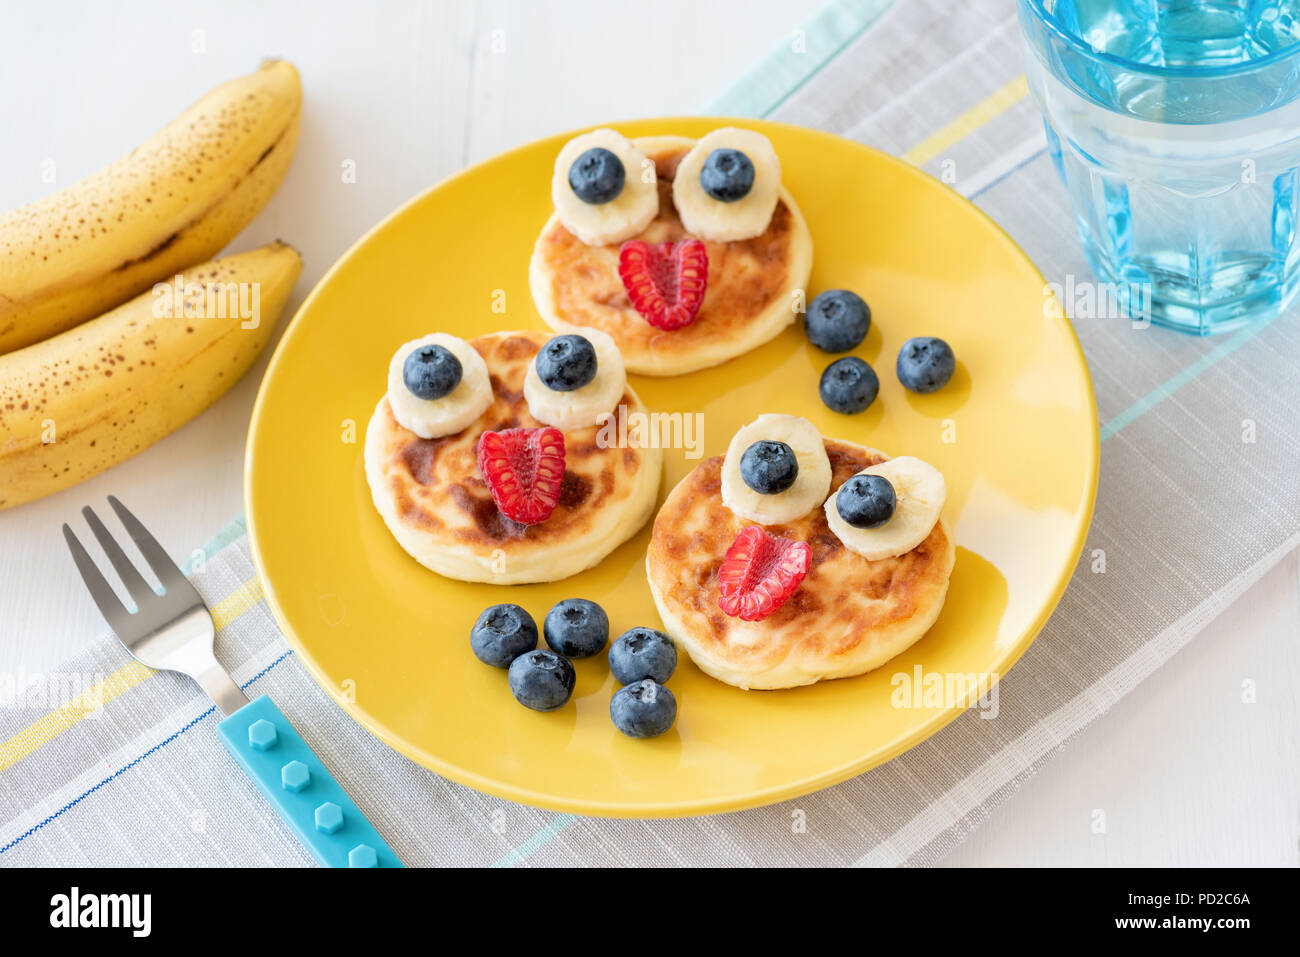 Fun food for kids. Pancakes with funny animal faces on colorful yellow plate. Kids meal. Selective focus - Stock Image